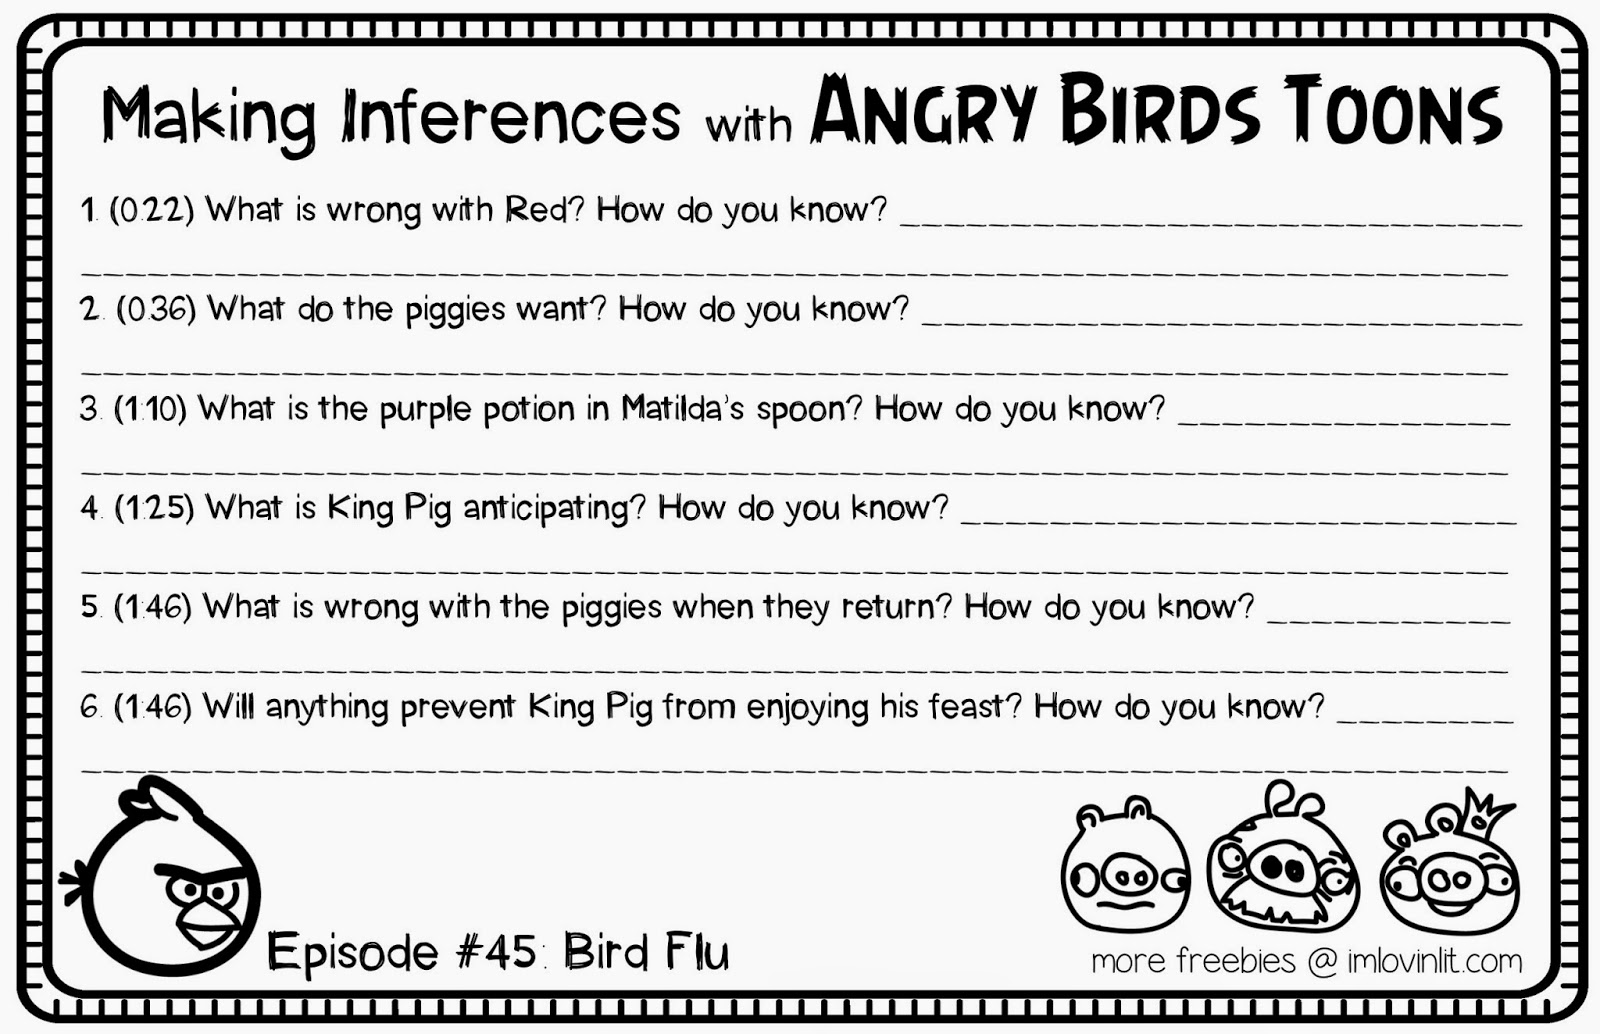 Teaching Inference Middle School Lawteched – Inference Worksheets Middle School